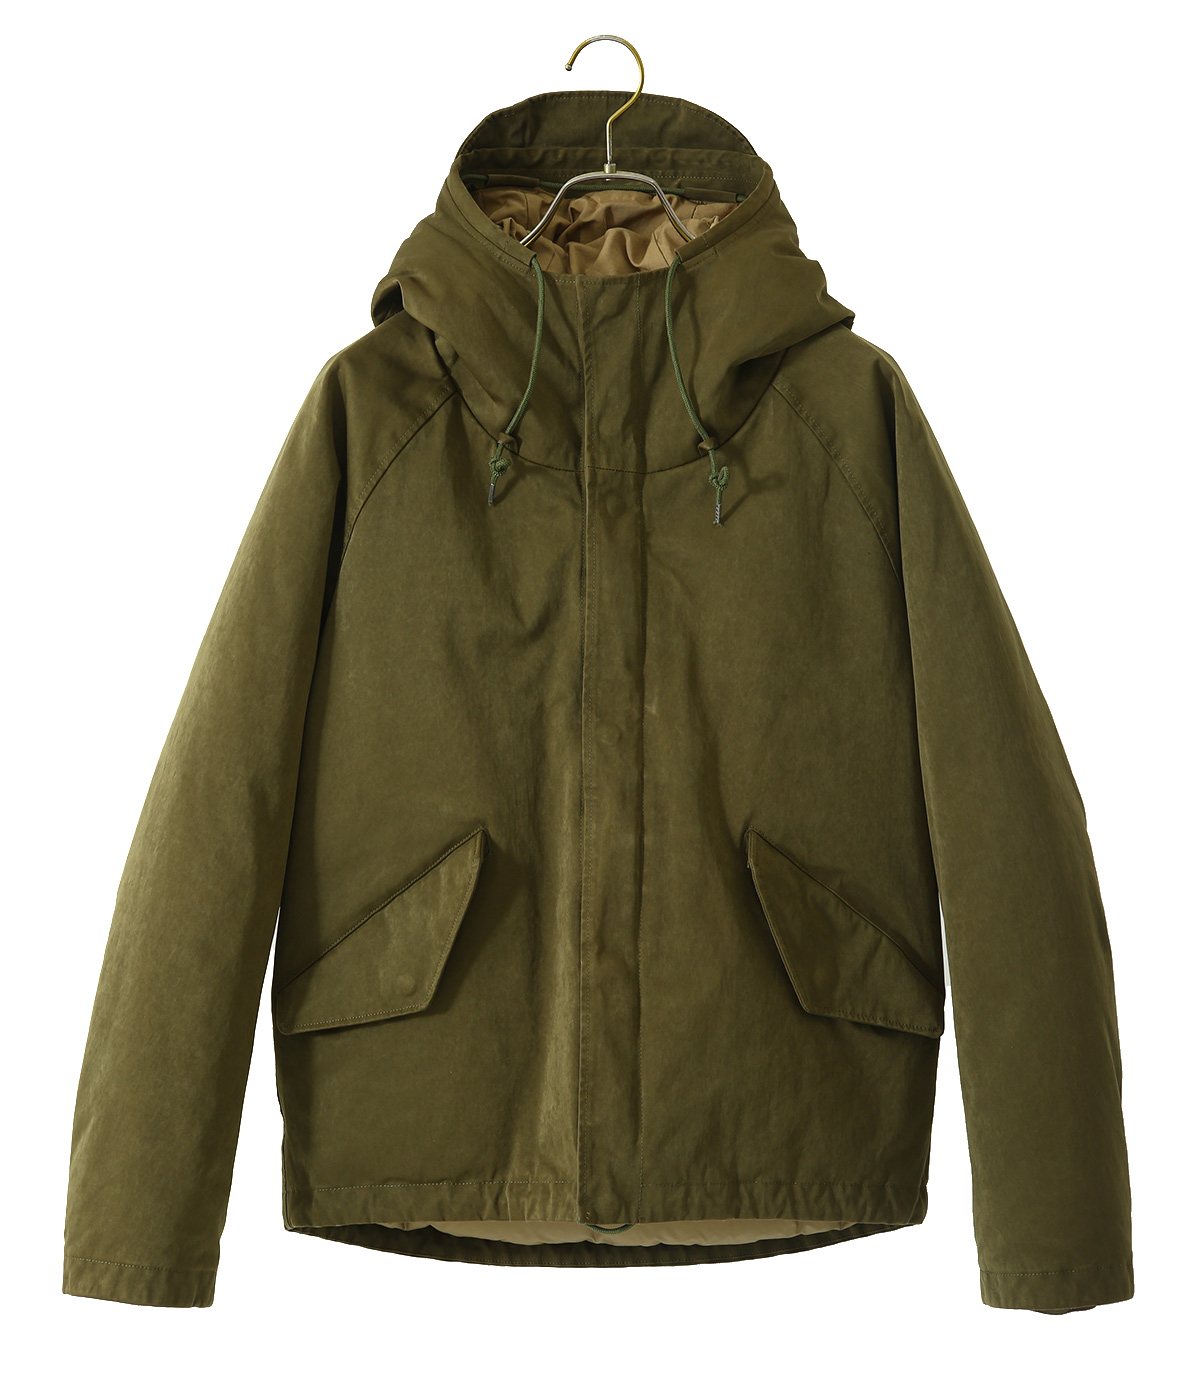 KEY ANORAK PIECE DYED POLYESTER/NYLON  MICRO-FIBRE JERSEY DOWN FILLED